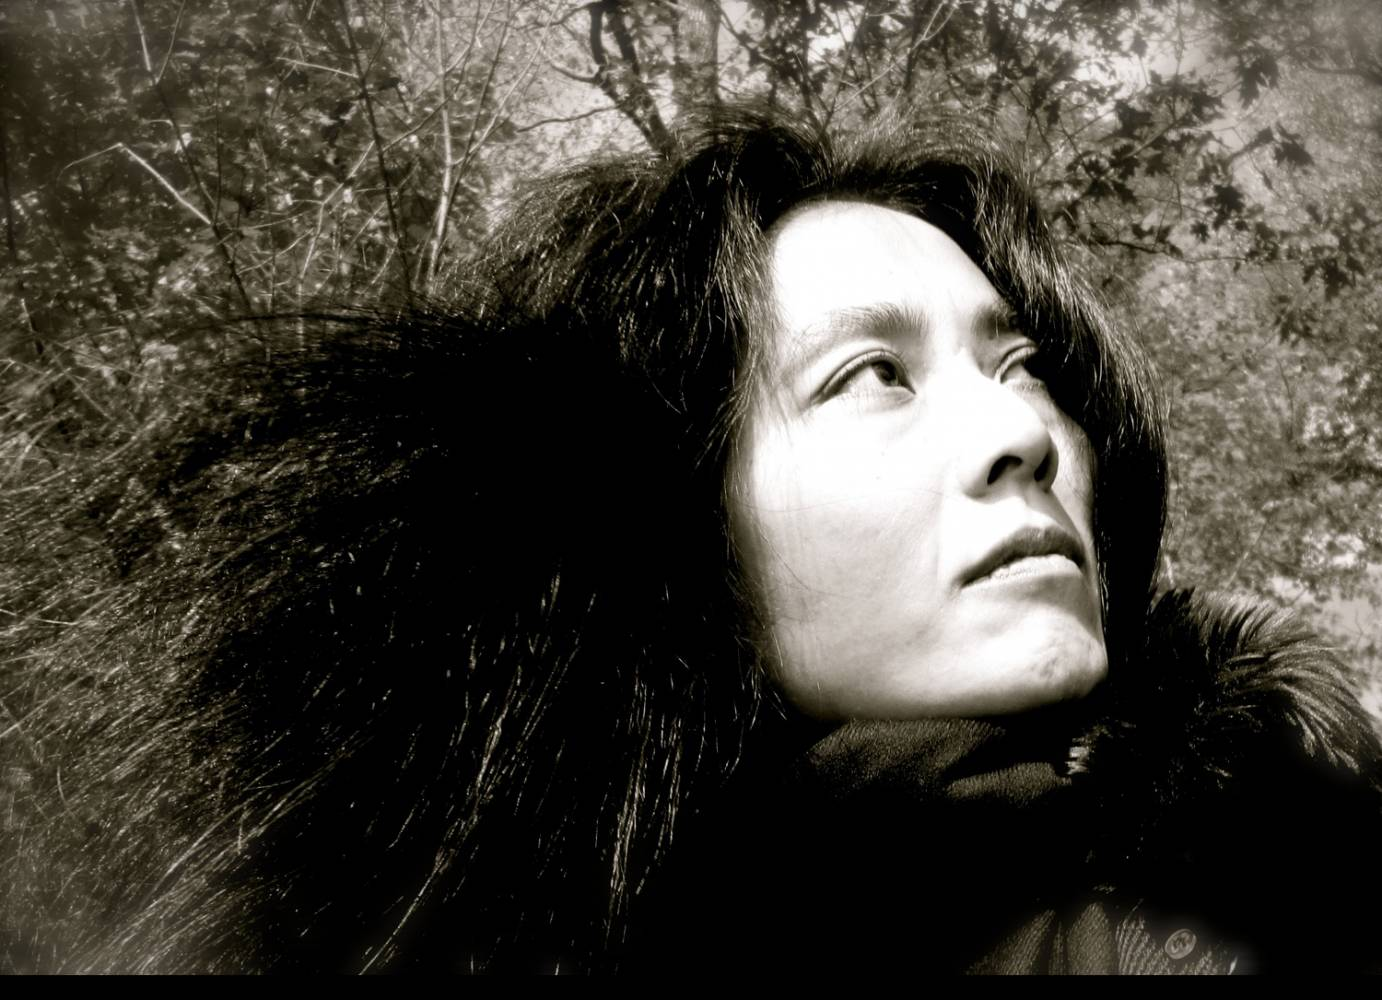 a black and white portraite of Mana Hashimoto outside in the daytime,among leaves, in a forest type setting. She faces on a high diagonal, and her hair seems wild like the twigs and branches around her